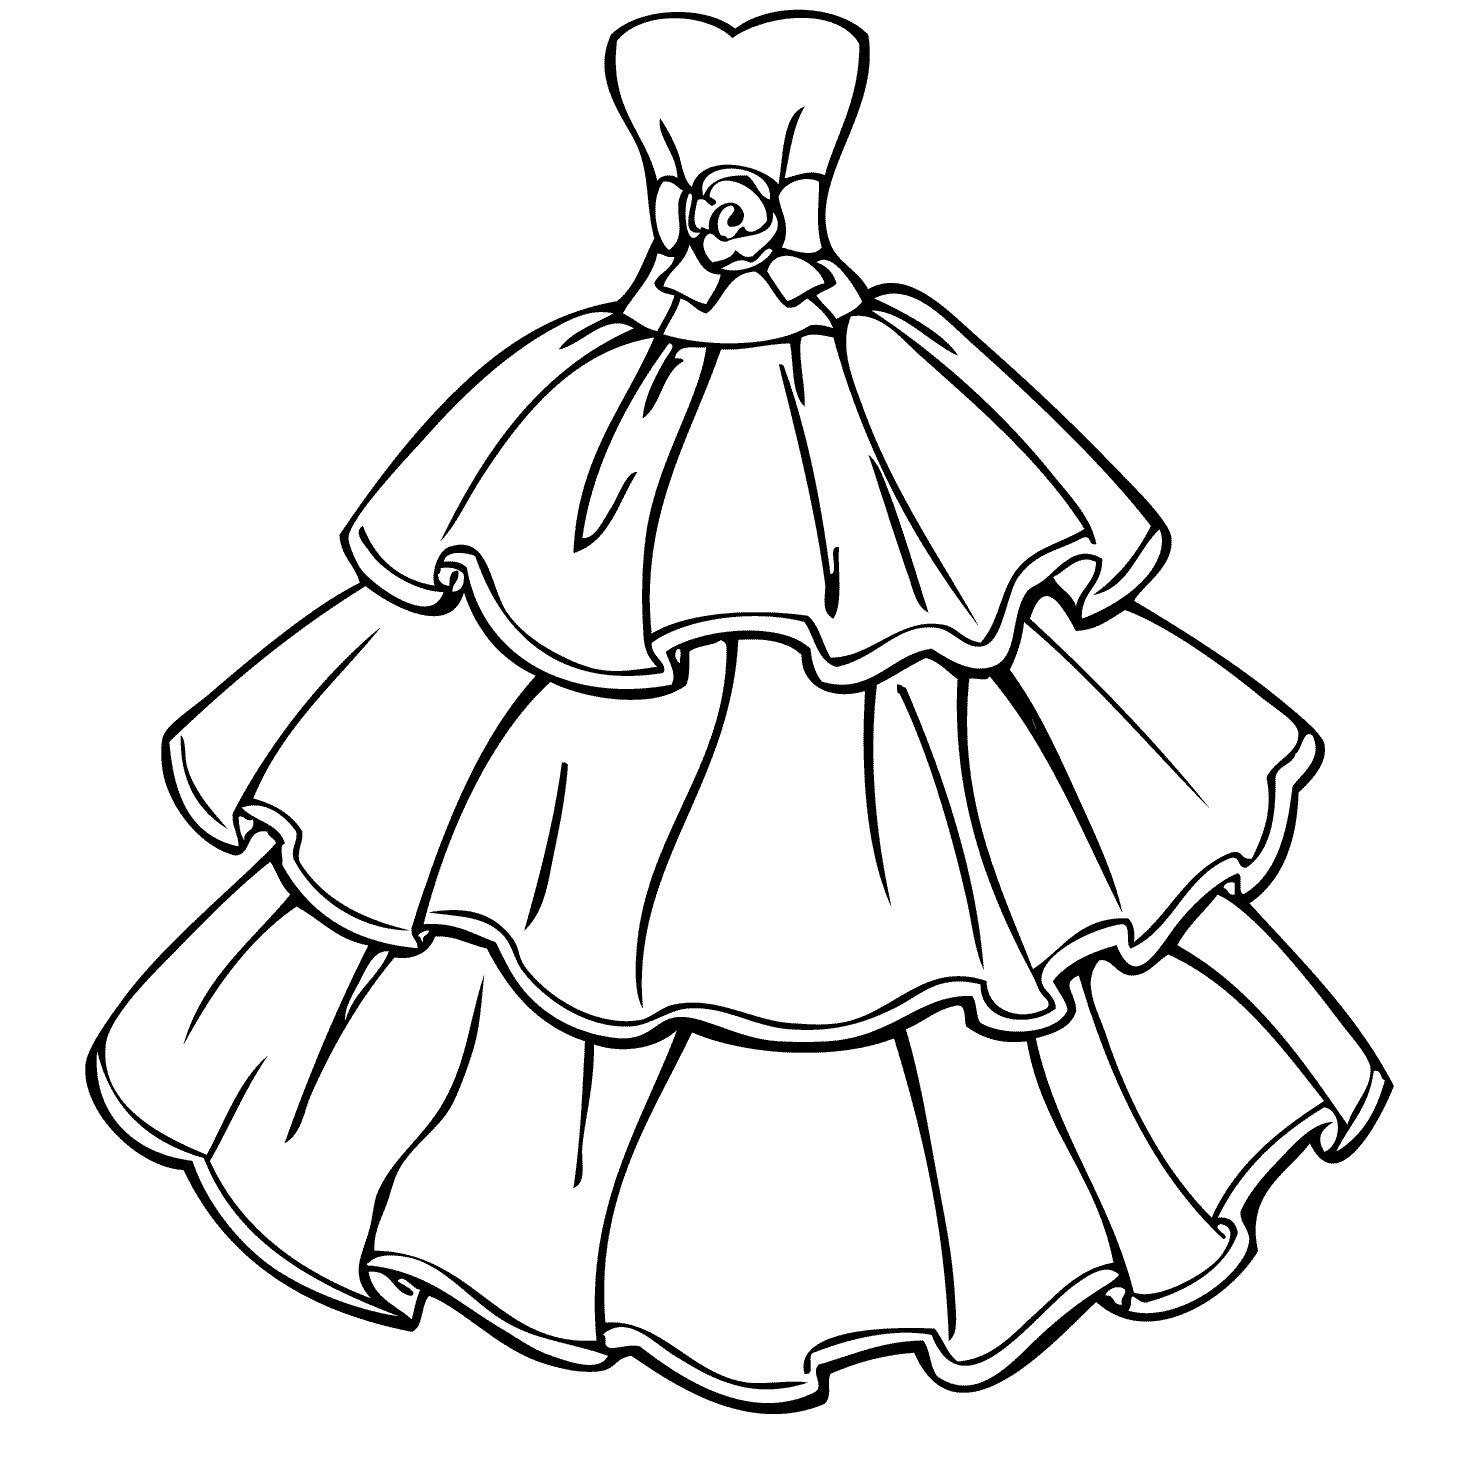 dress coloring pages to print dress coloring pages to download and print for free to pages coloring dress print